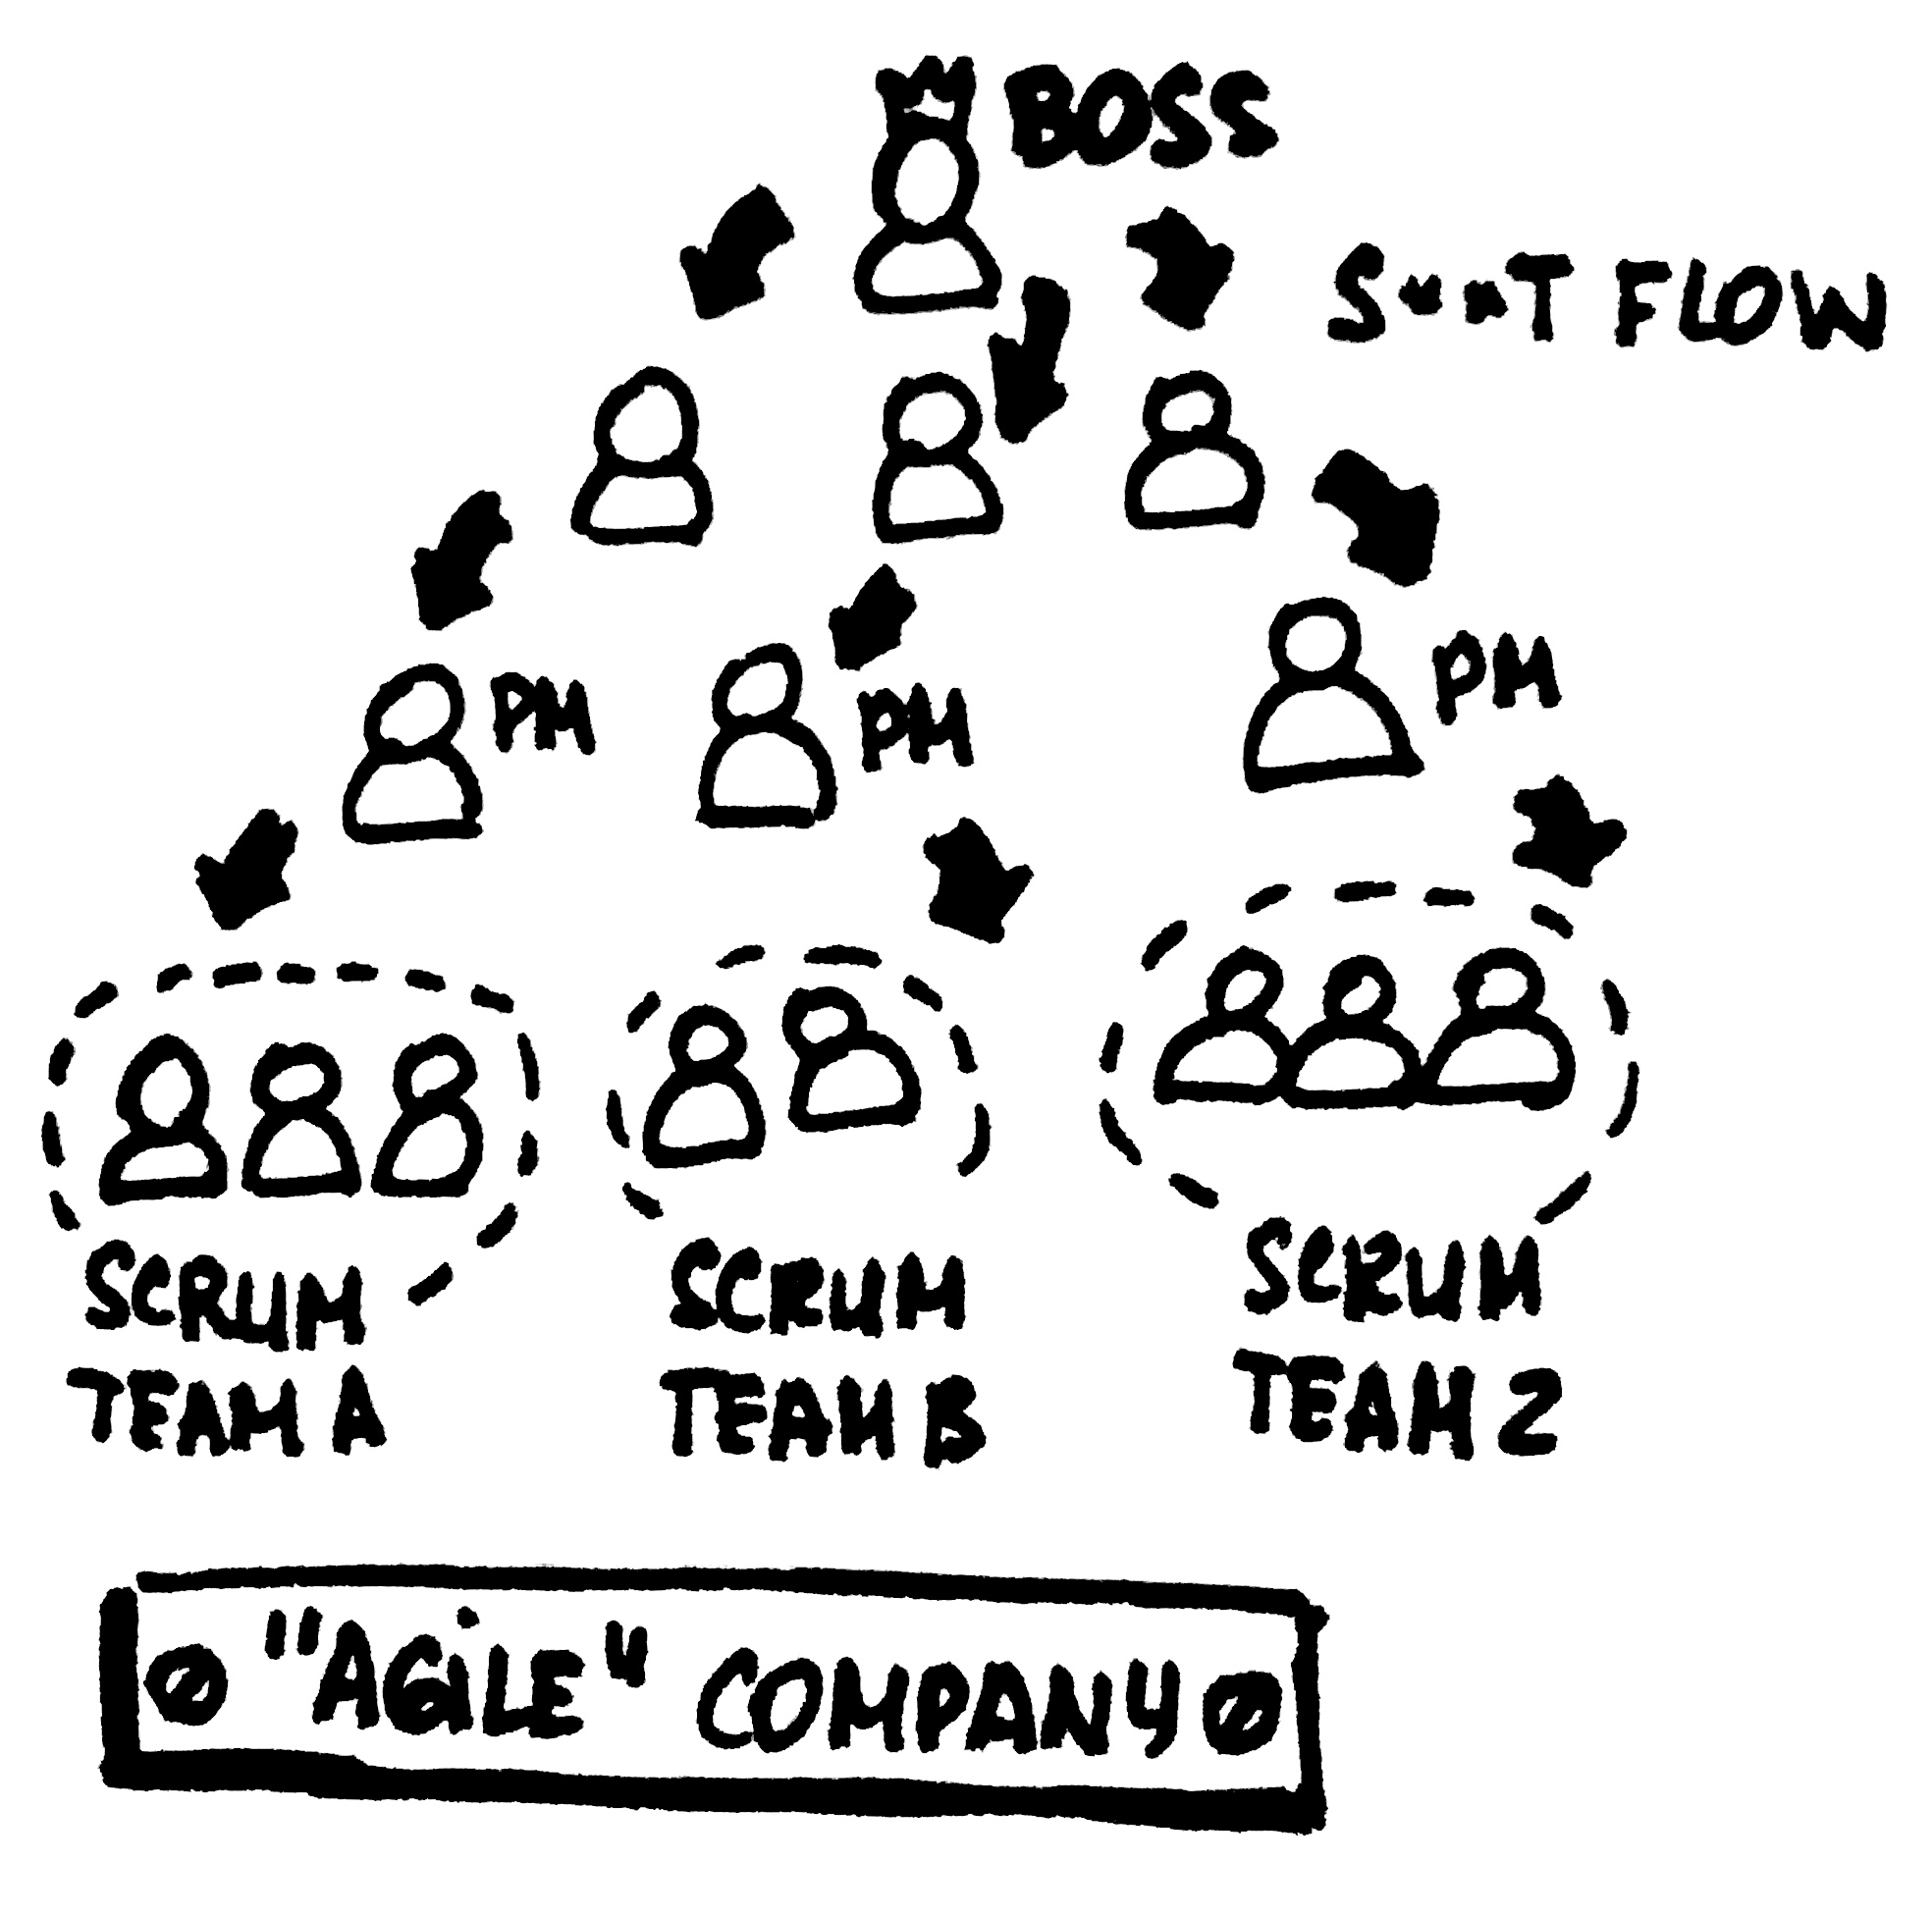 WTF Project Manager is doing in Scrum team?